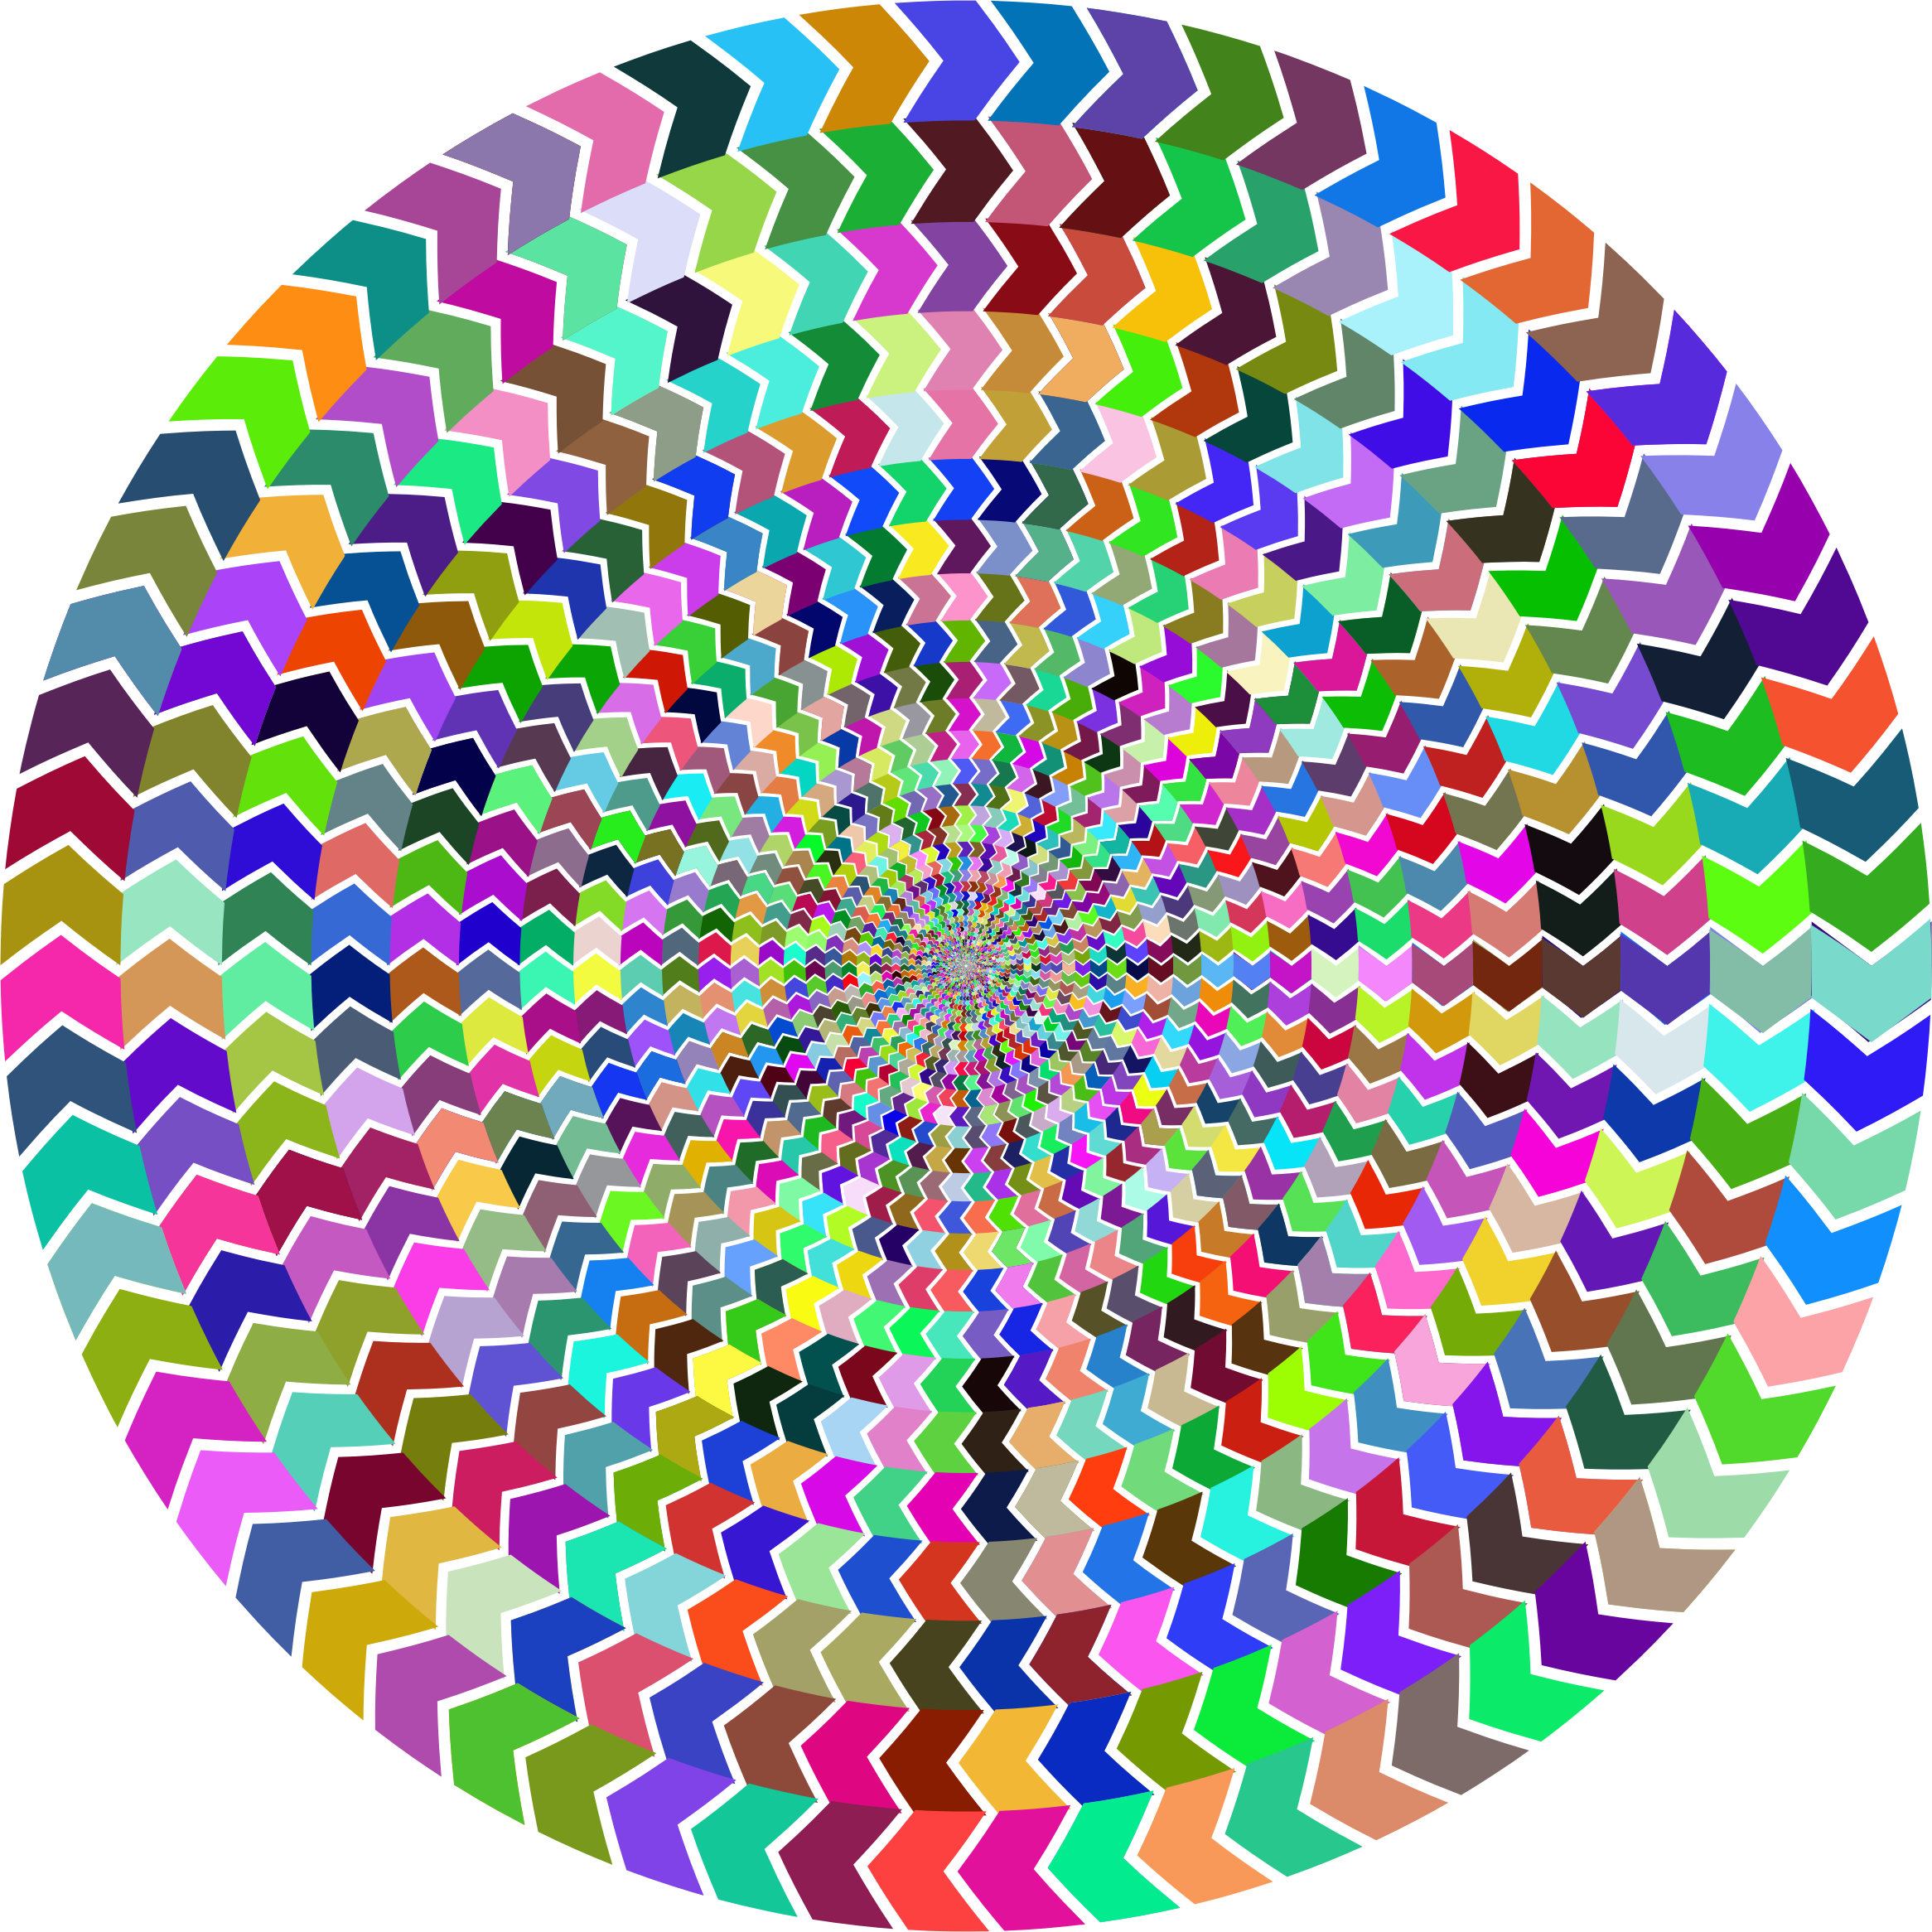 Prismatic Zig Zag Illusion Vortex 2 by GDJ